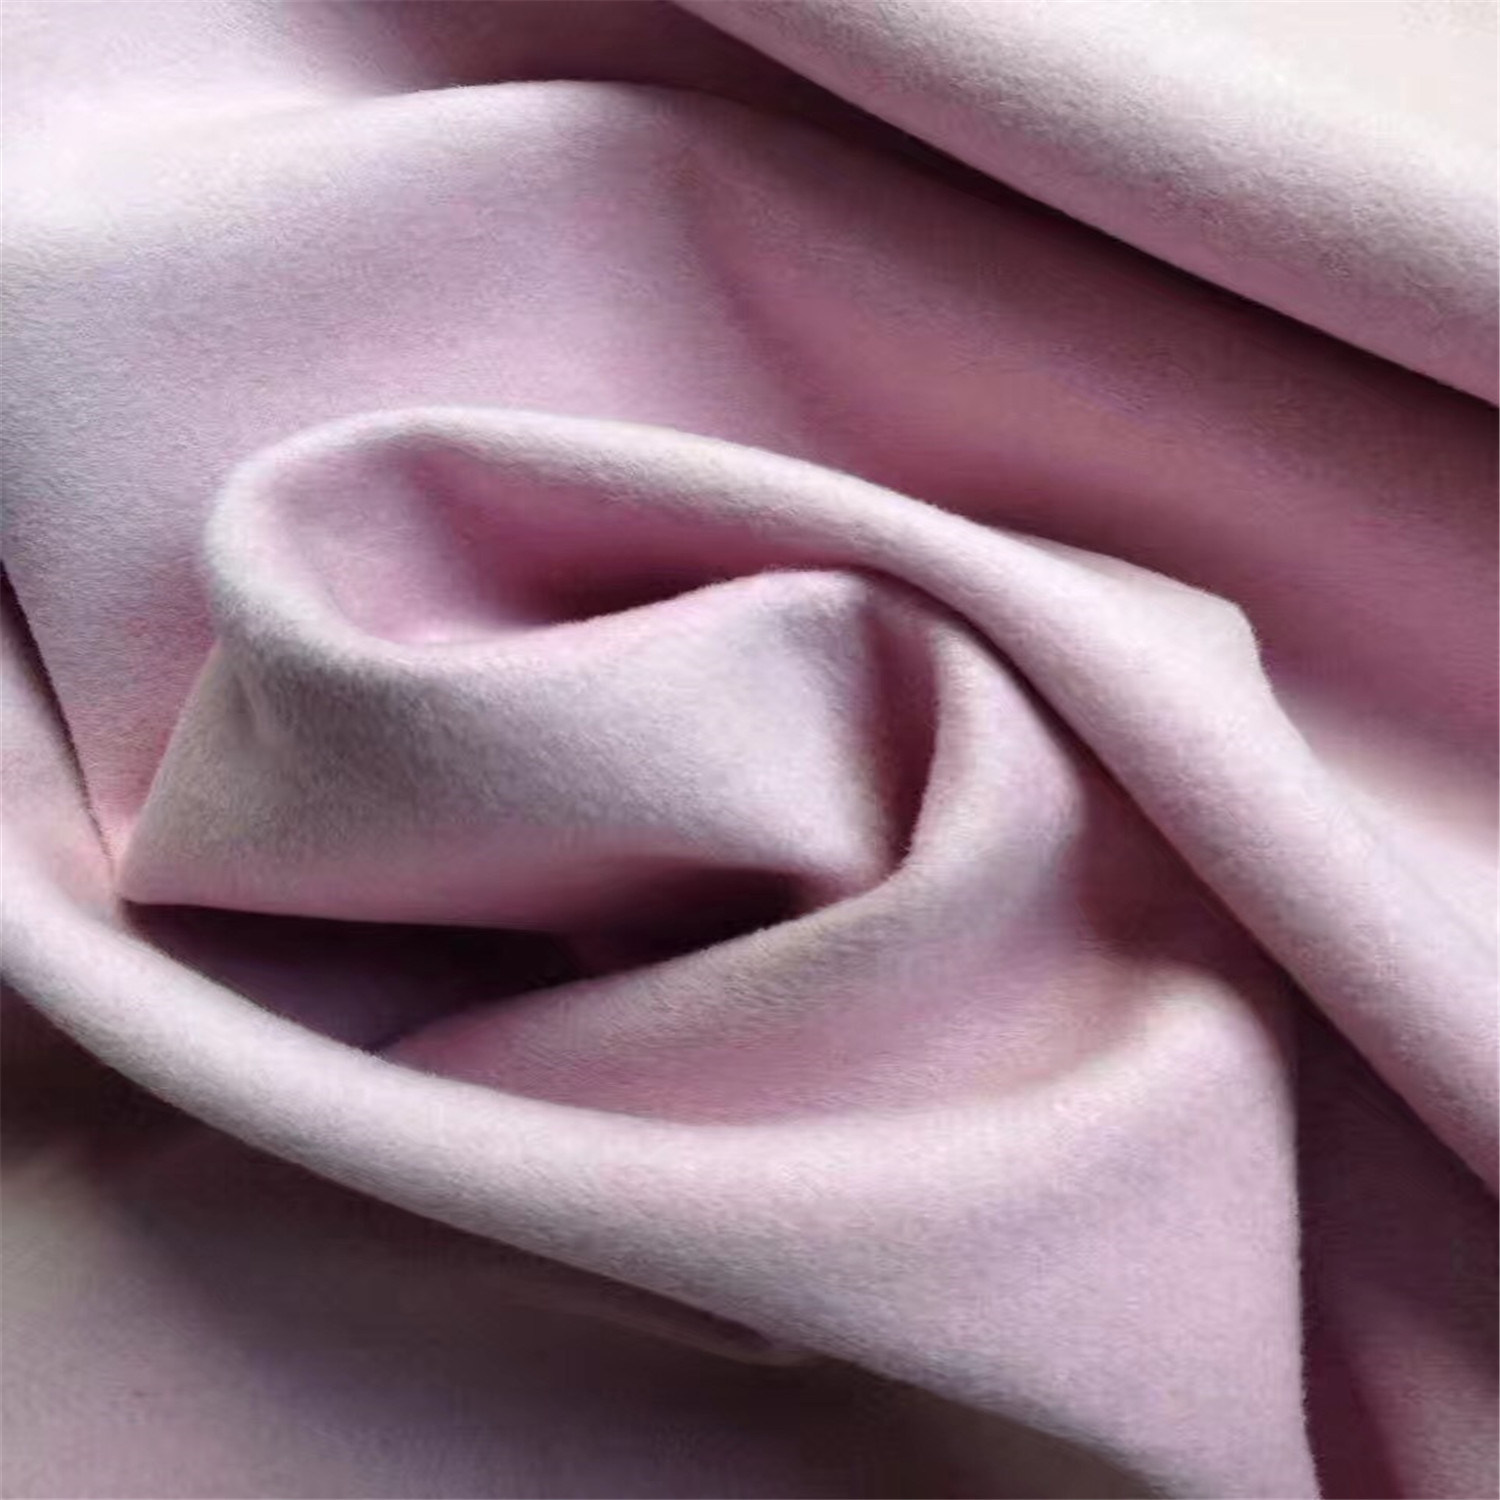 Double-Sided Woolen Fleece, Wool Fabric, Suit Fabric, Garment Fabric, Clothing, Textile Fabric